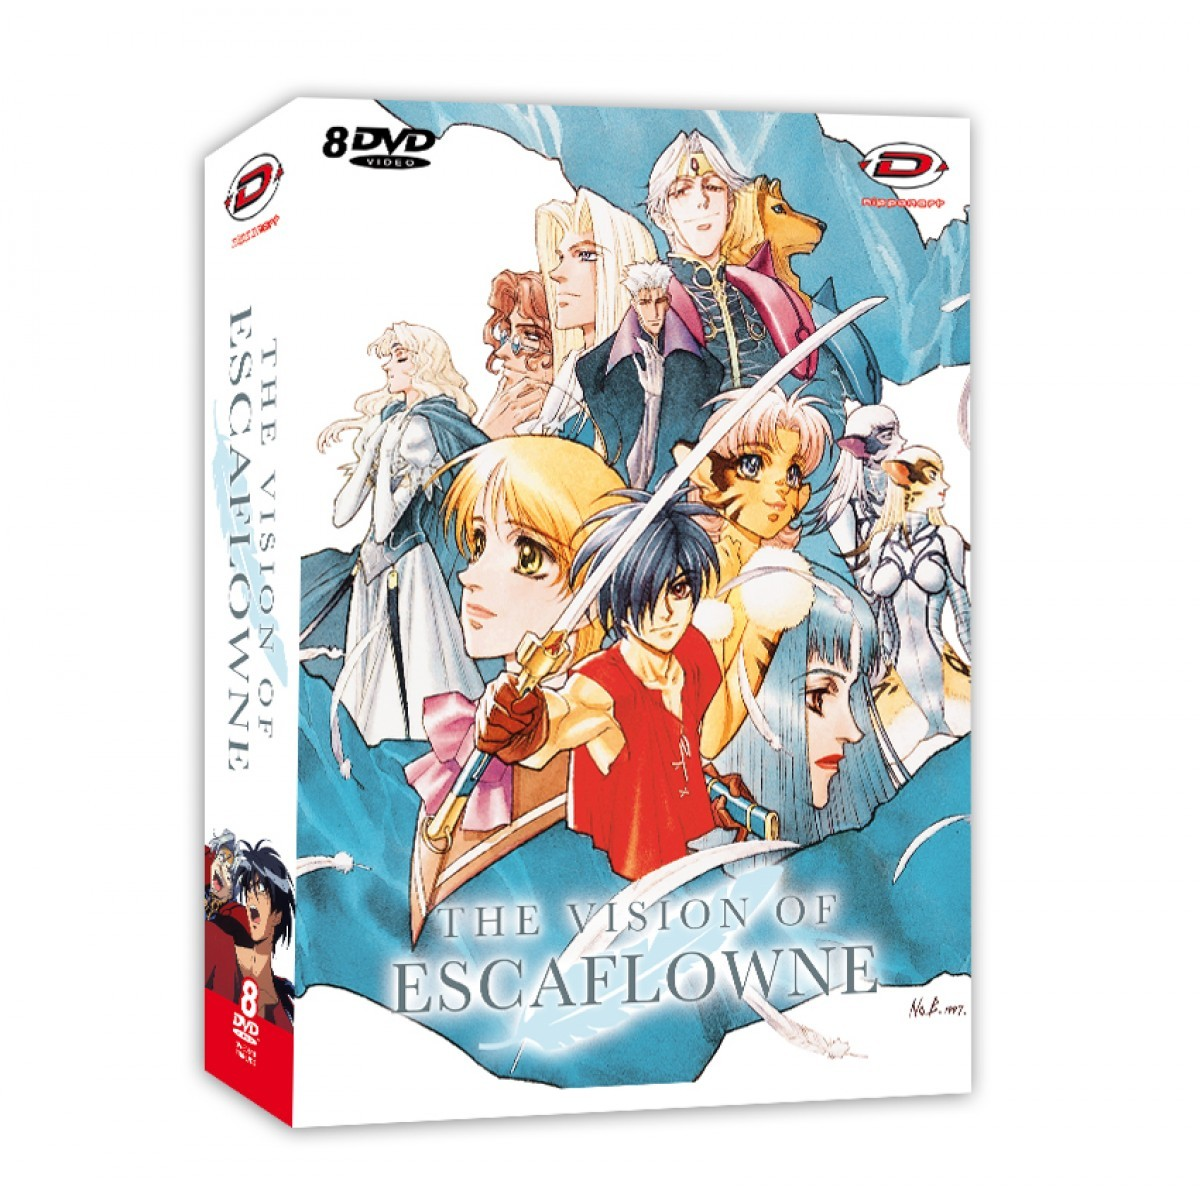 Escaflowne Collectors Edition 8 DVDS